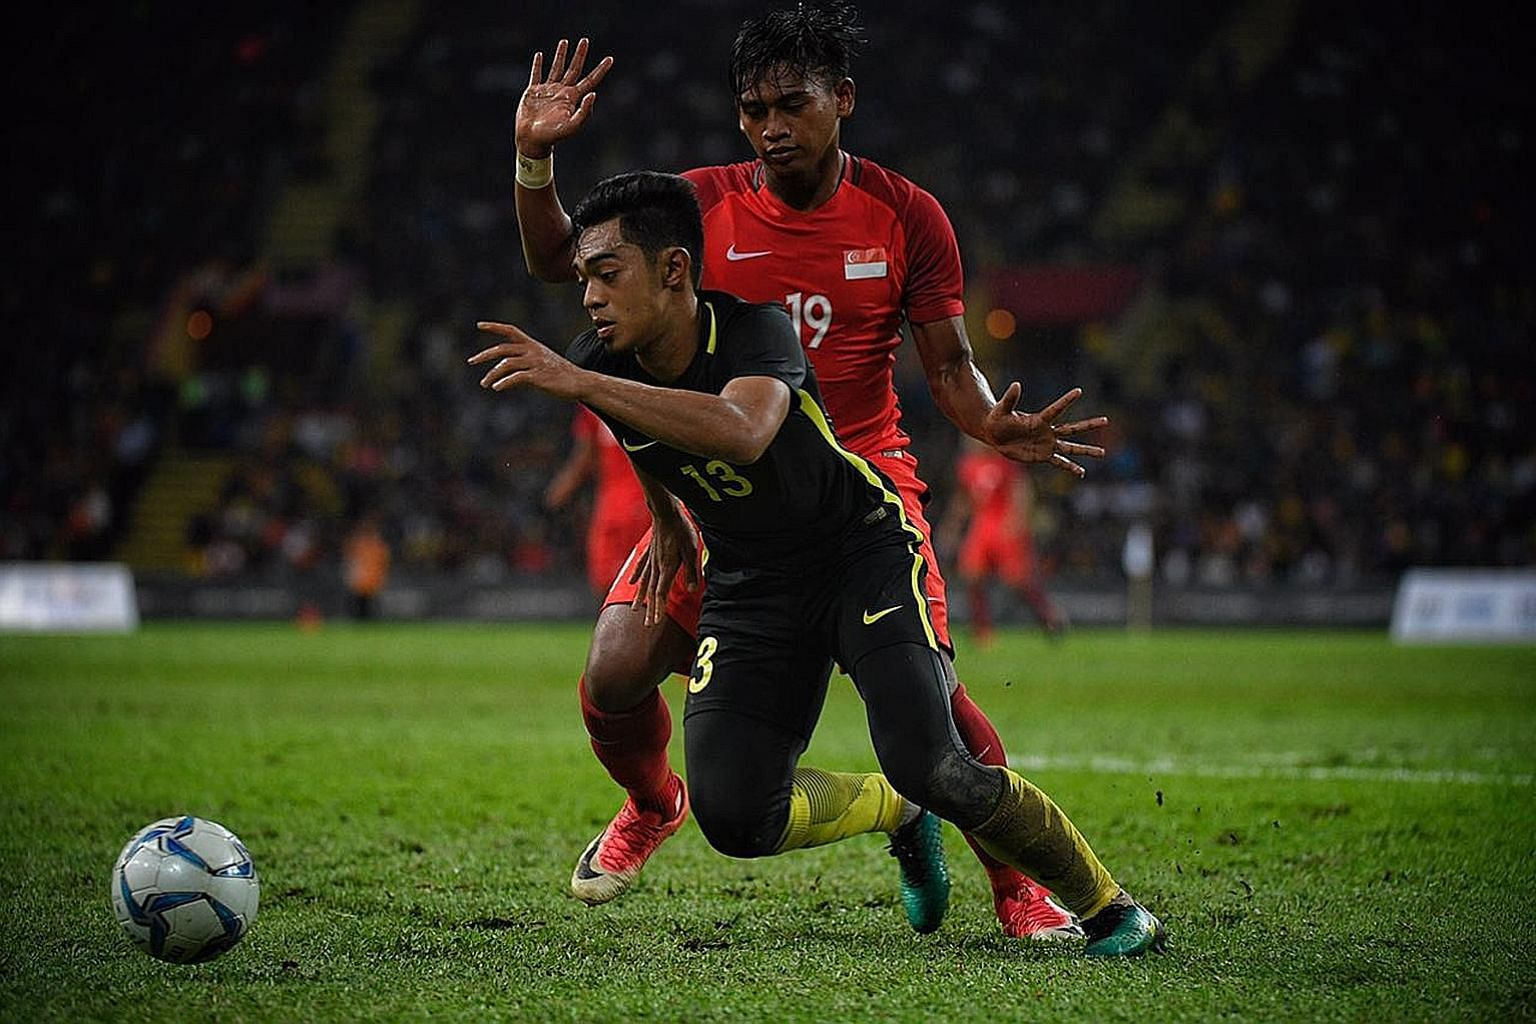 Singapore's scorer Amiruldin Asraf Nodin battling for the ball against Ariff Farhan Isa of Malaysia in their match at Shah Alam Stadium. The Young Lions must beat both Laos and Brunei by big margins and hope either the hosts or Myanmar lose both thei